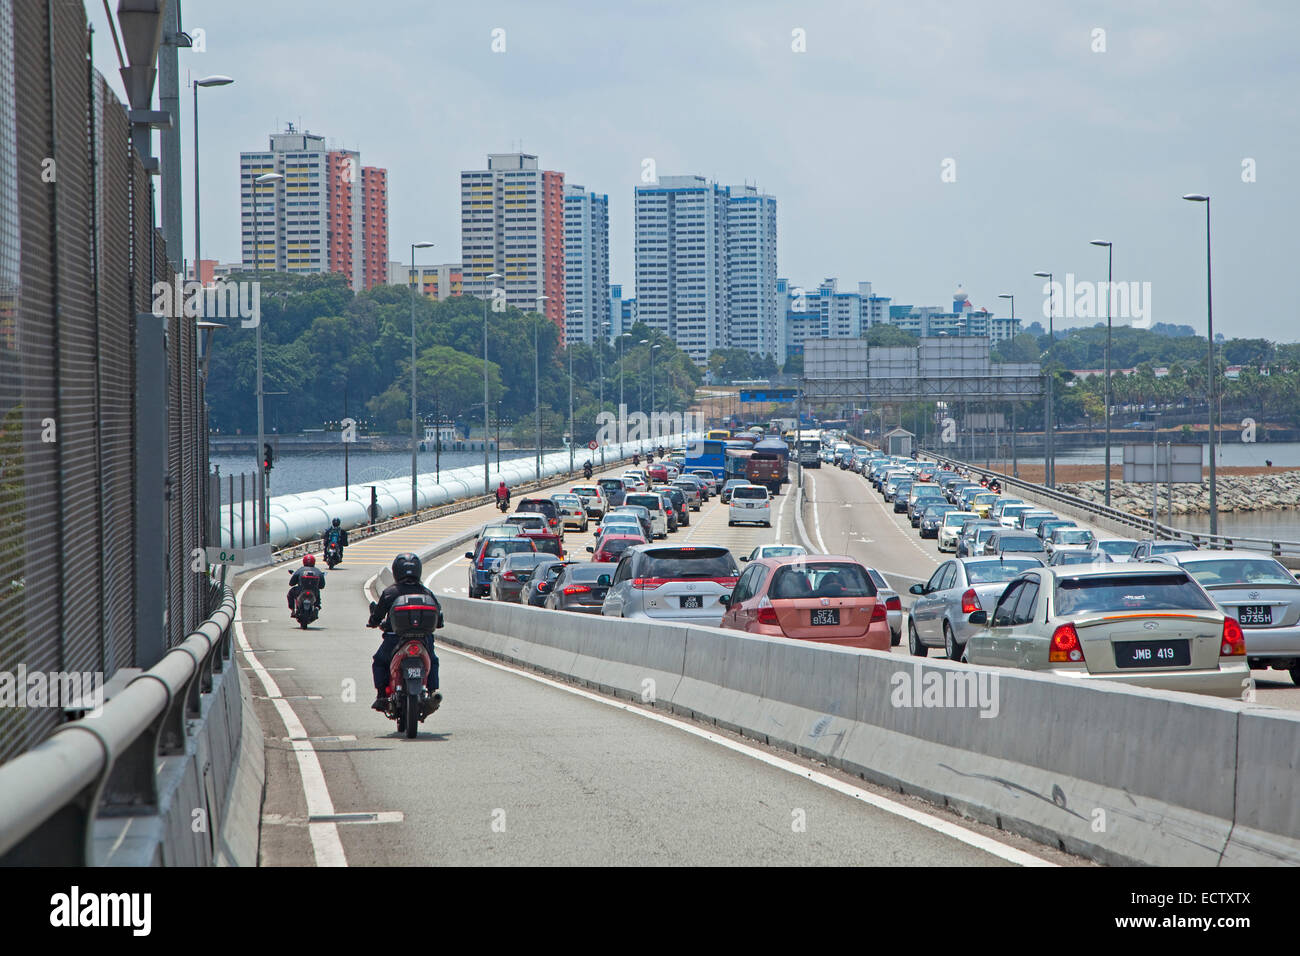 Cars in traffic jam during rush hour on the bridge from Malaysia to Singapore - Stock Image